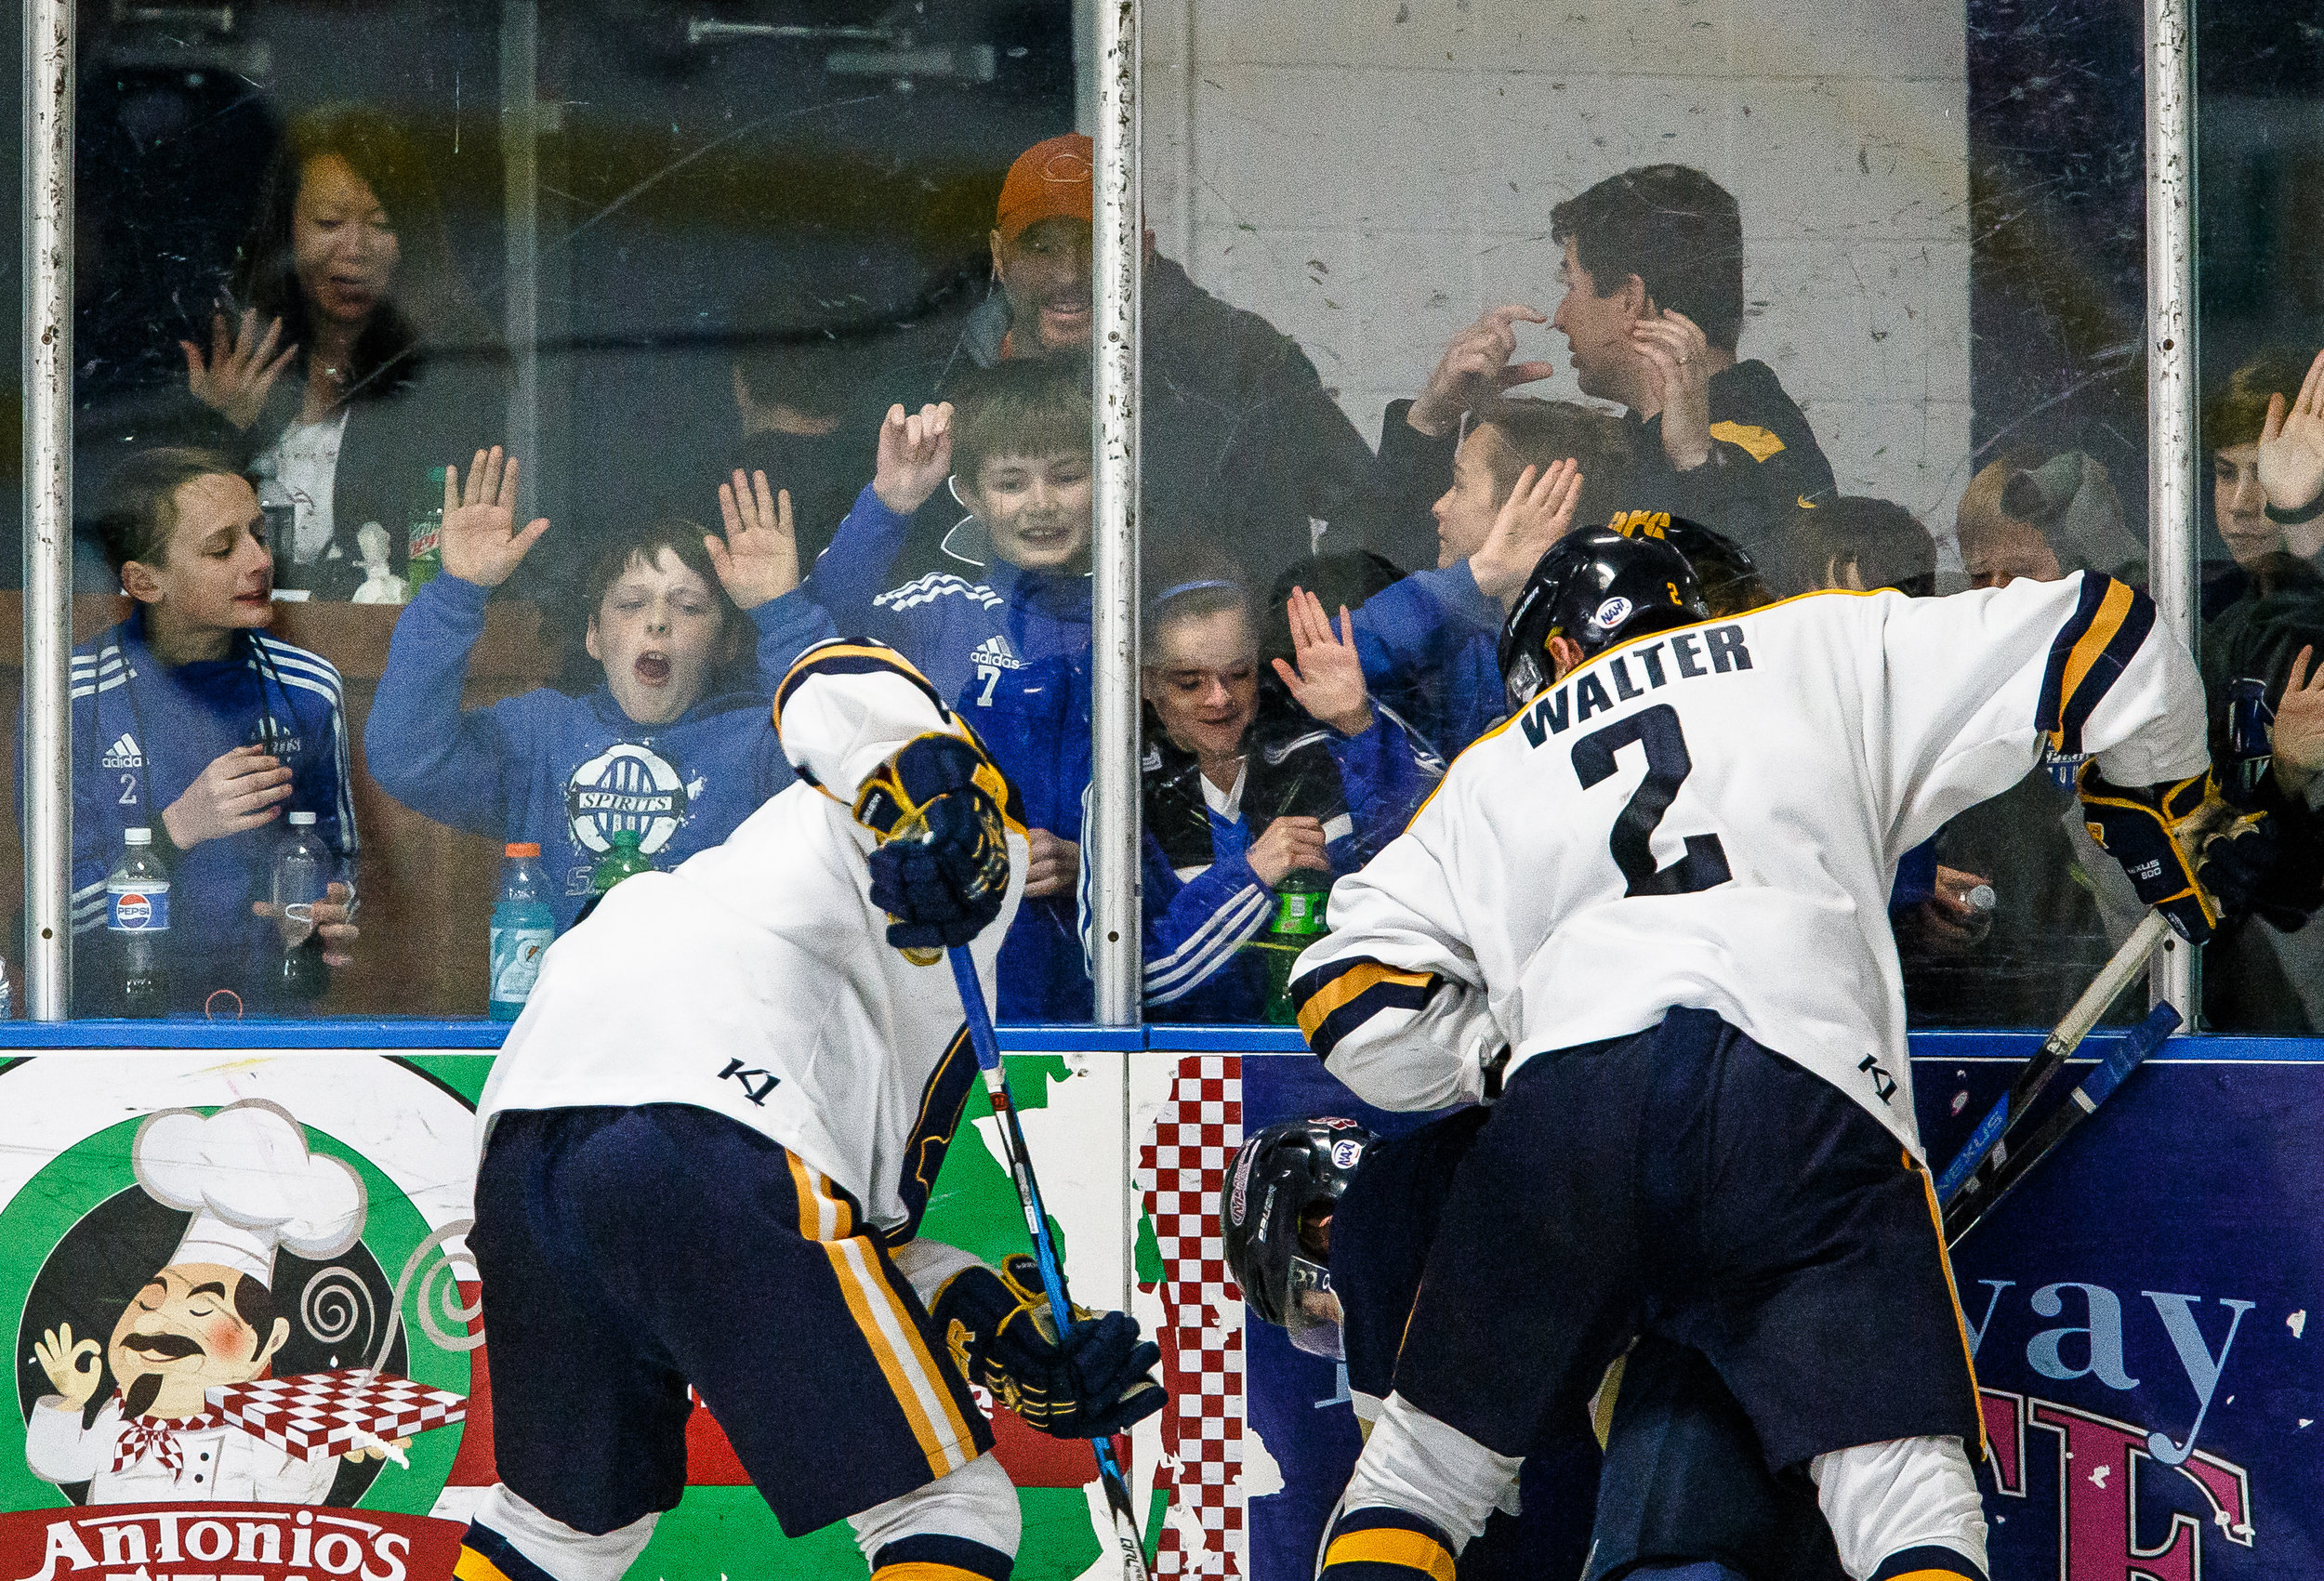 Young fans bang on the glass as the Springfield Jr. Blues take on the Janesville Jets in the second period during the first round of the first-round North American Hockey League playoff series at the Nelson Center, Friday, April 20, 2018, in Springfield, Ill. [Justin L. Fowler/The State Journal-Register]